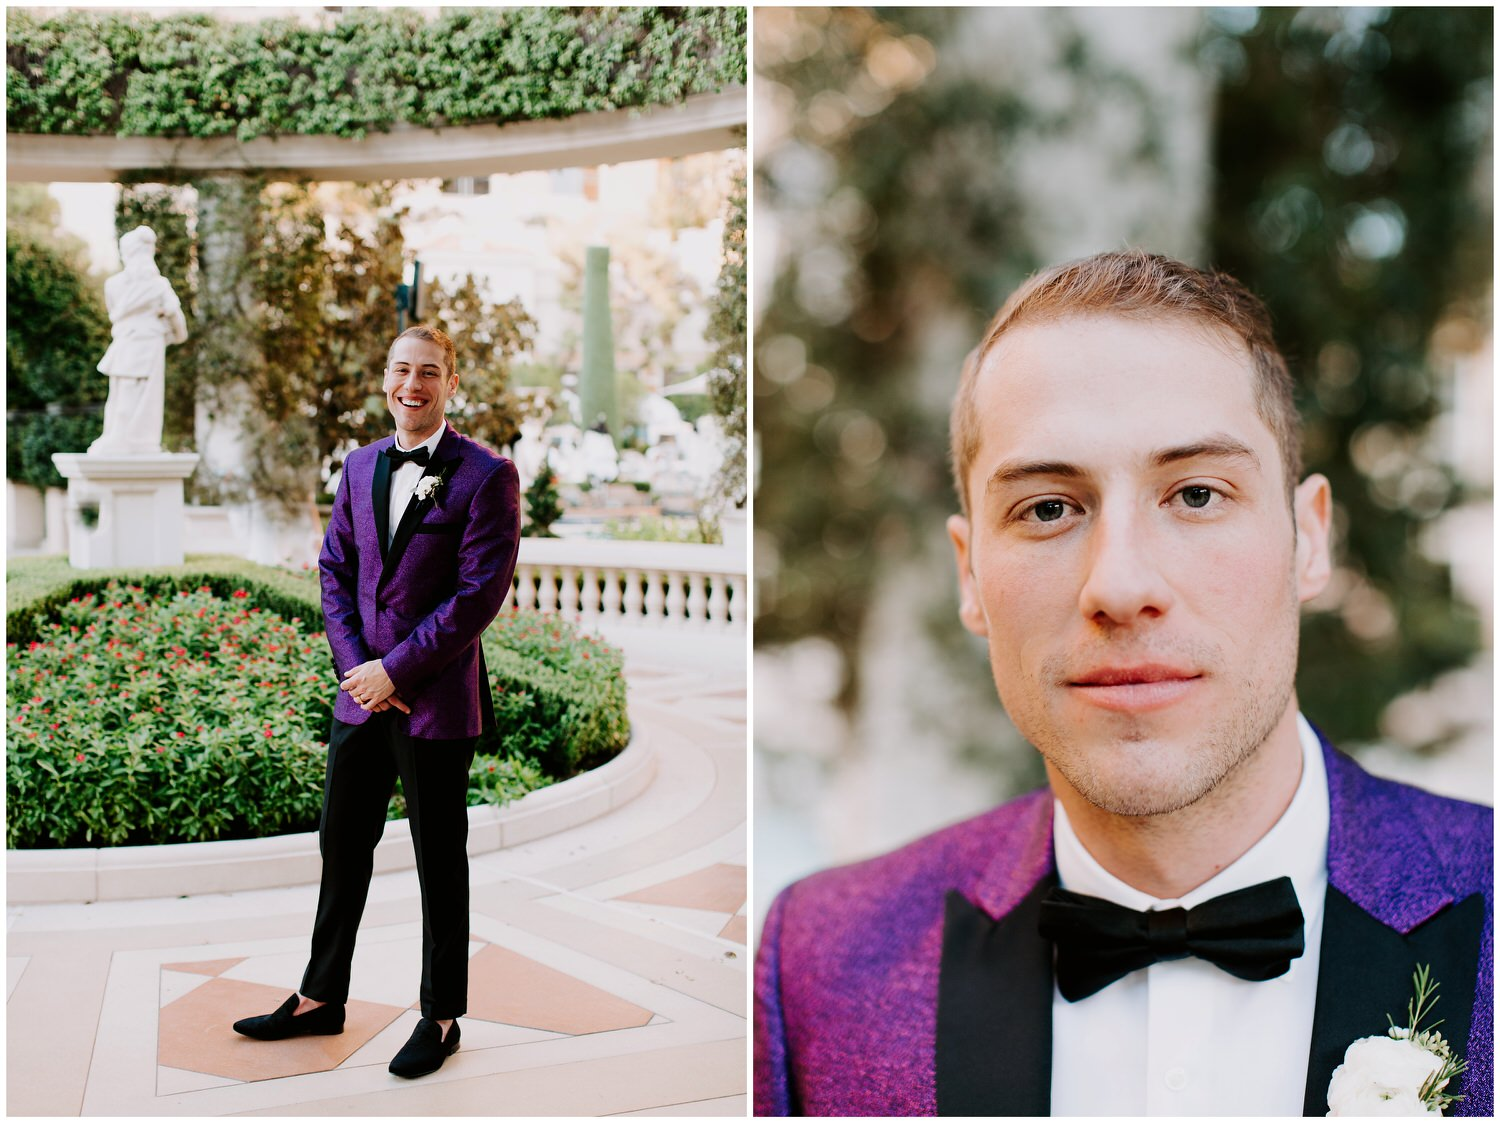 groom with purple glitter tuxedo unique style